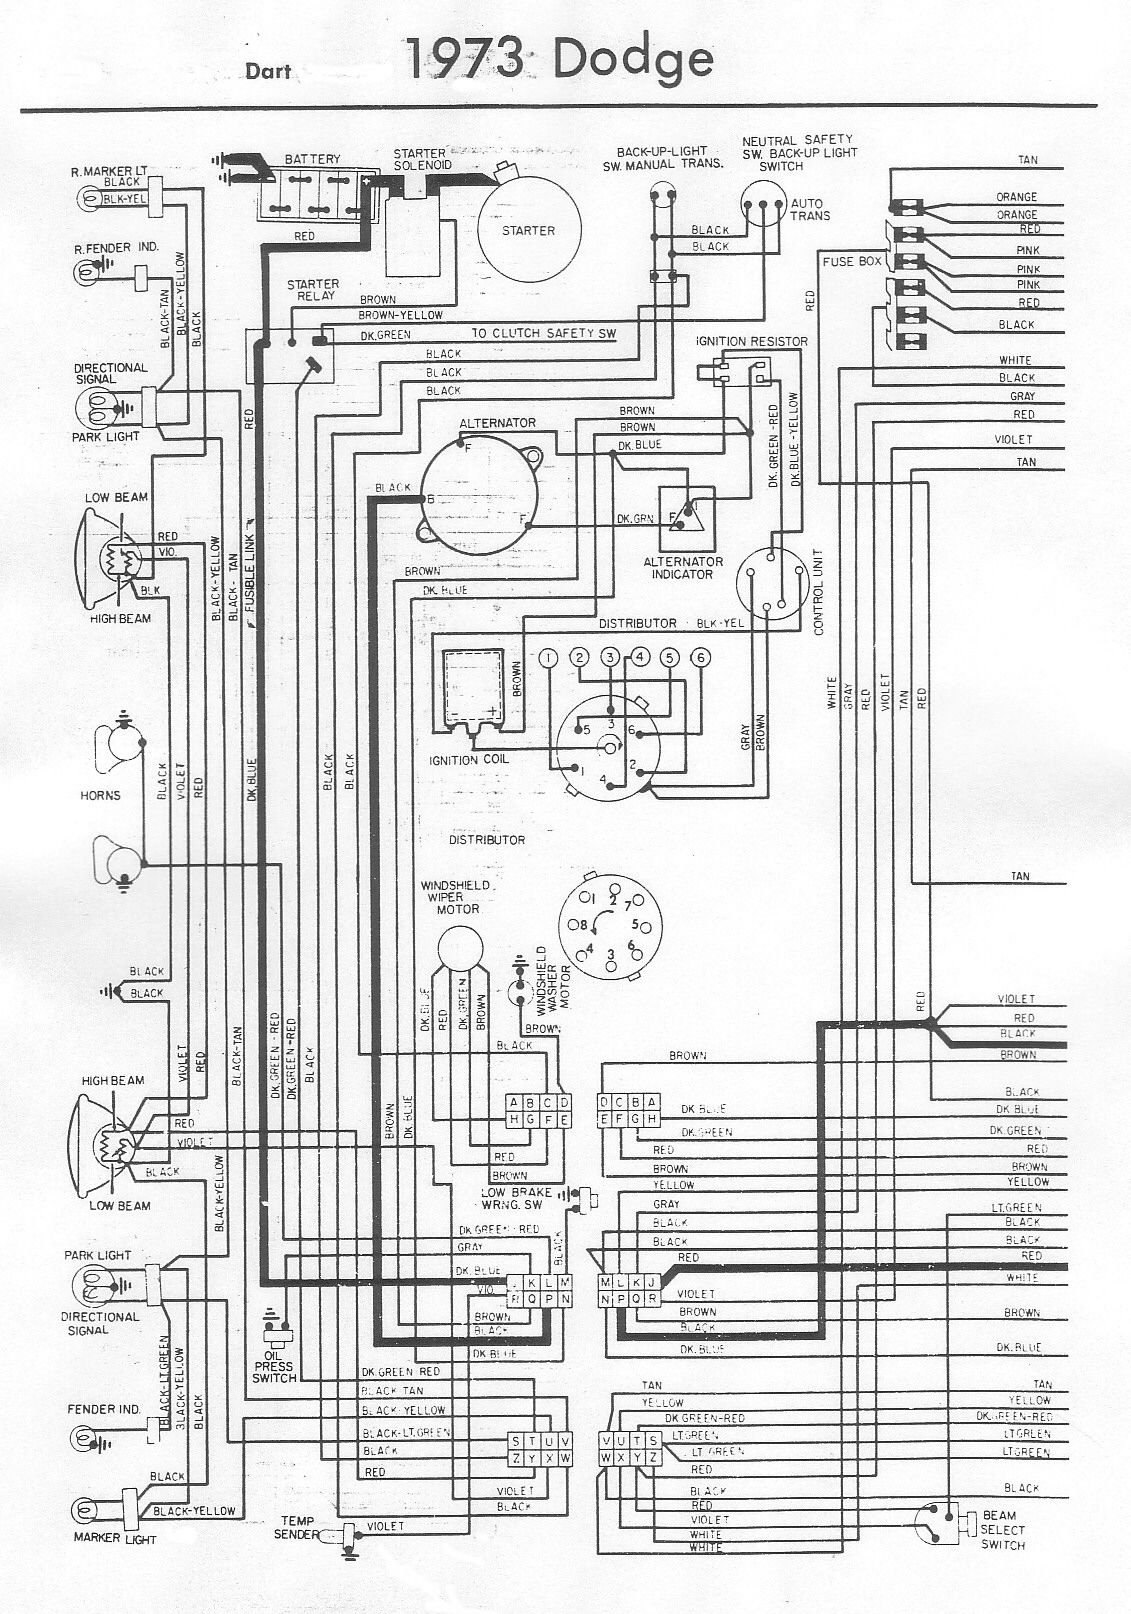 hight resolution of wiring diagram for 1973 dodge dart wiring diagrams tar 1969 dodge dart wiring diagram 73 dodge